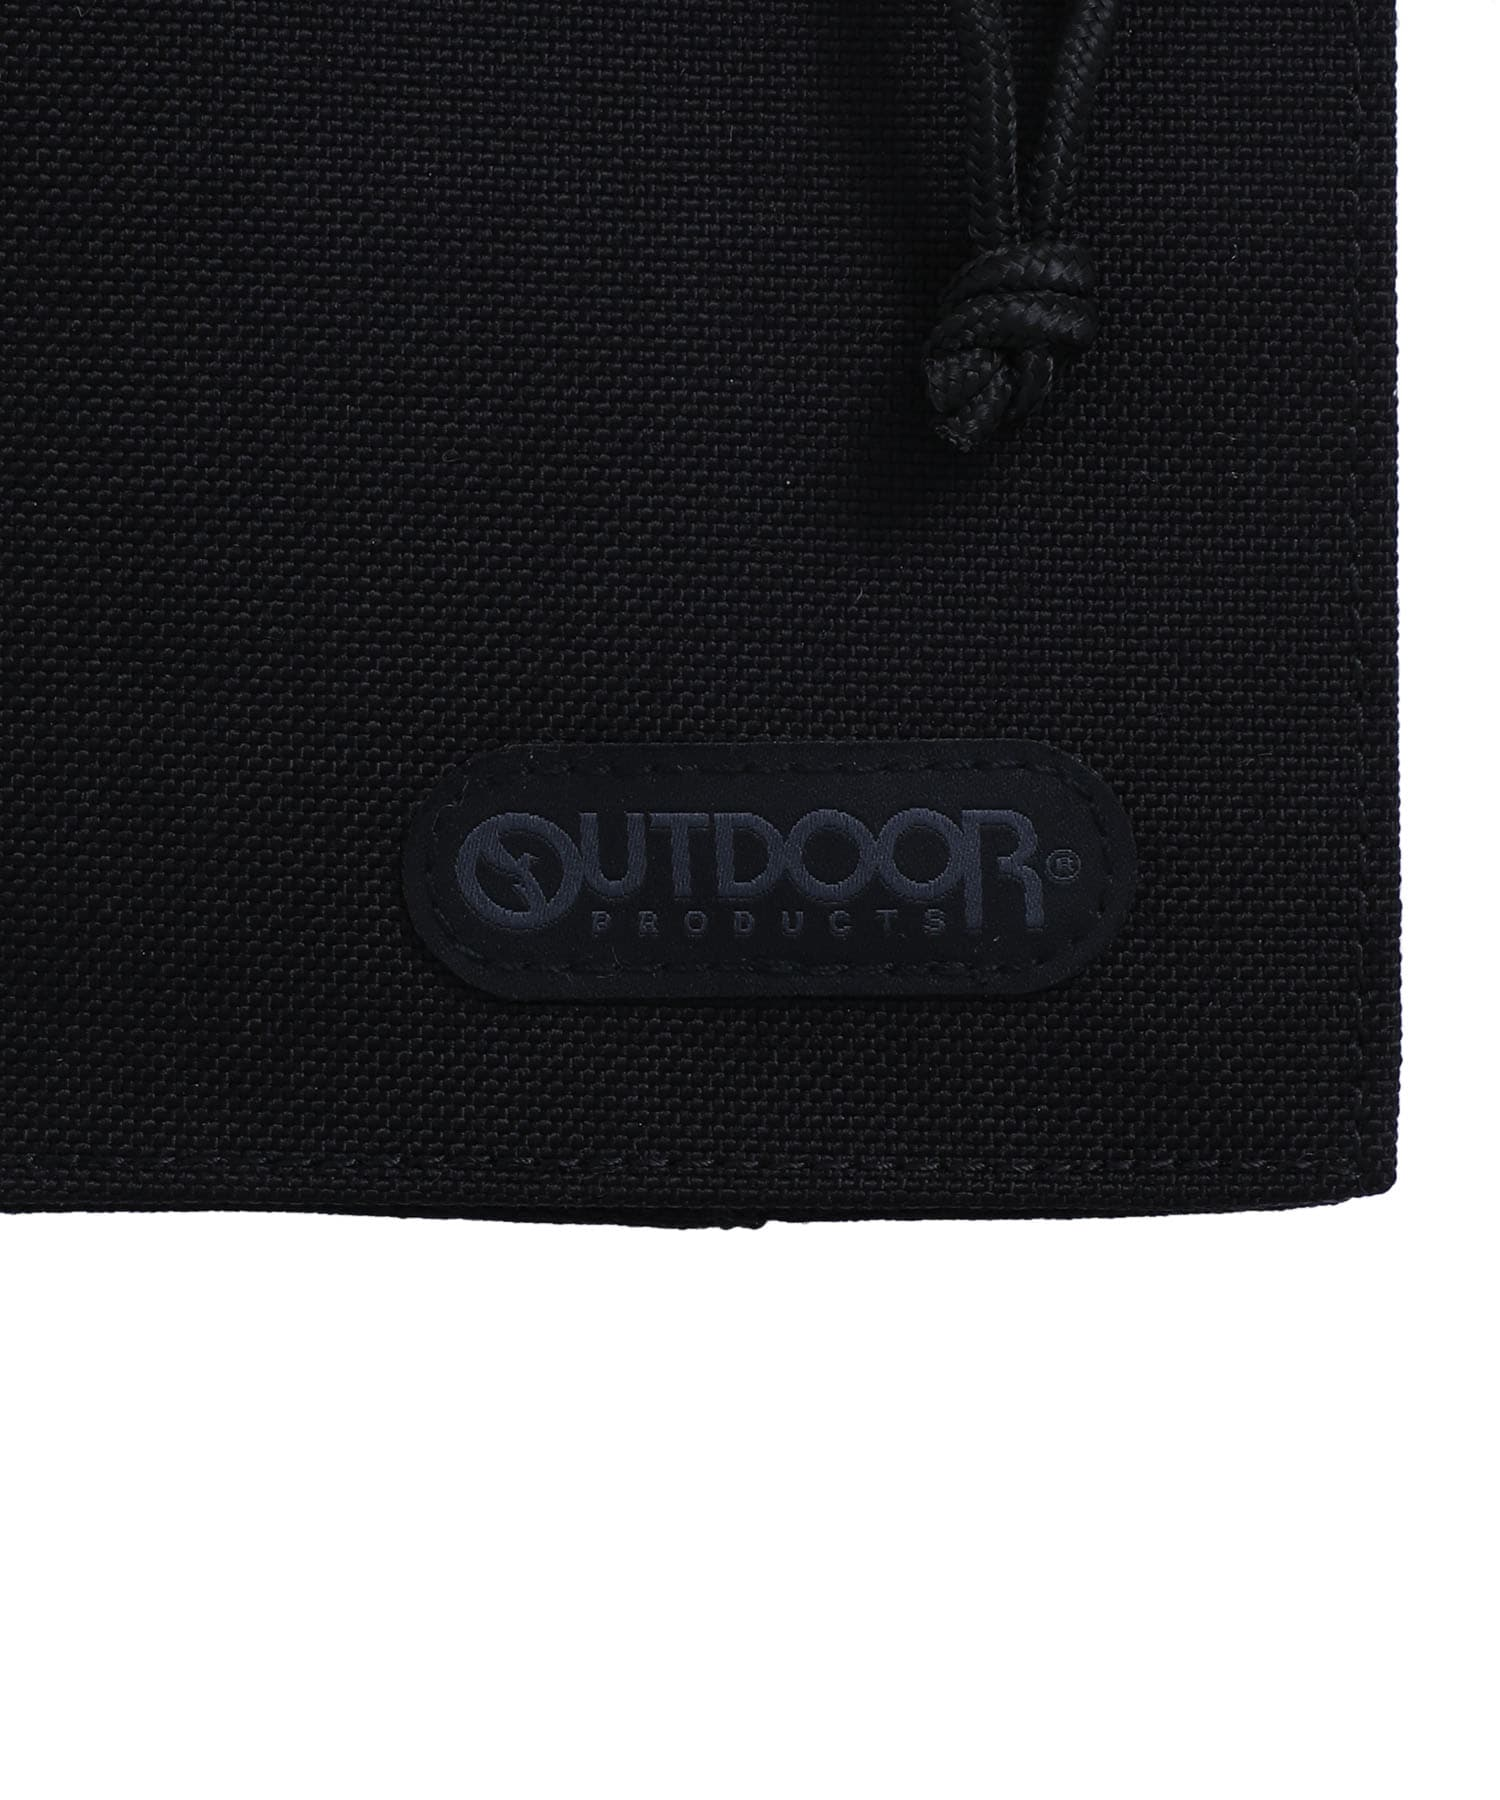 ×OUTDOOR PRODUCTS SMALL BAG